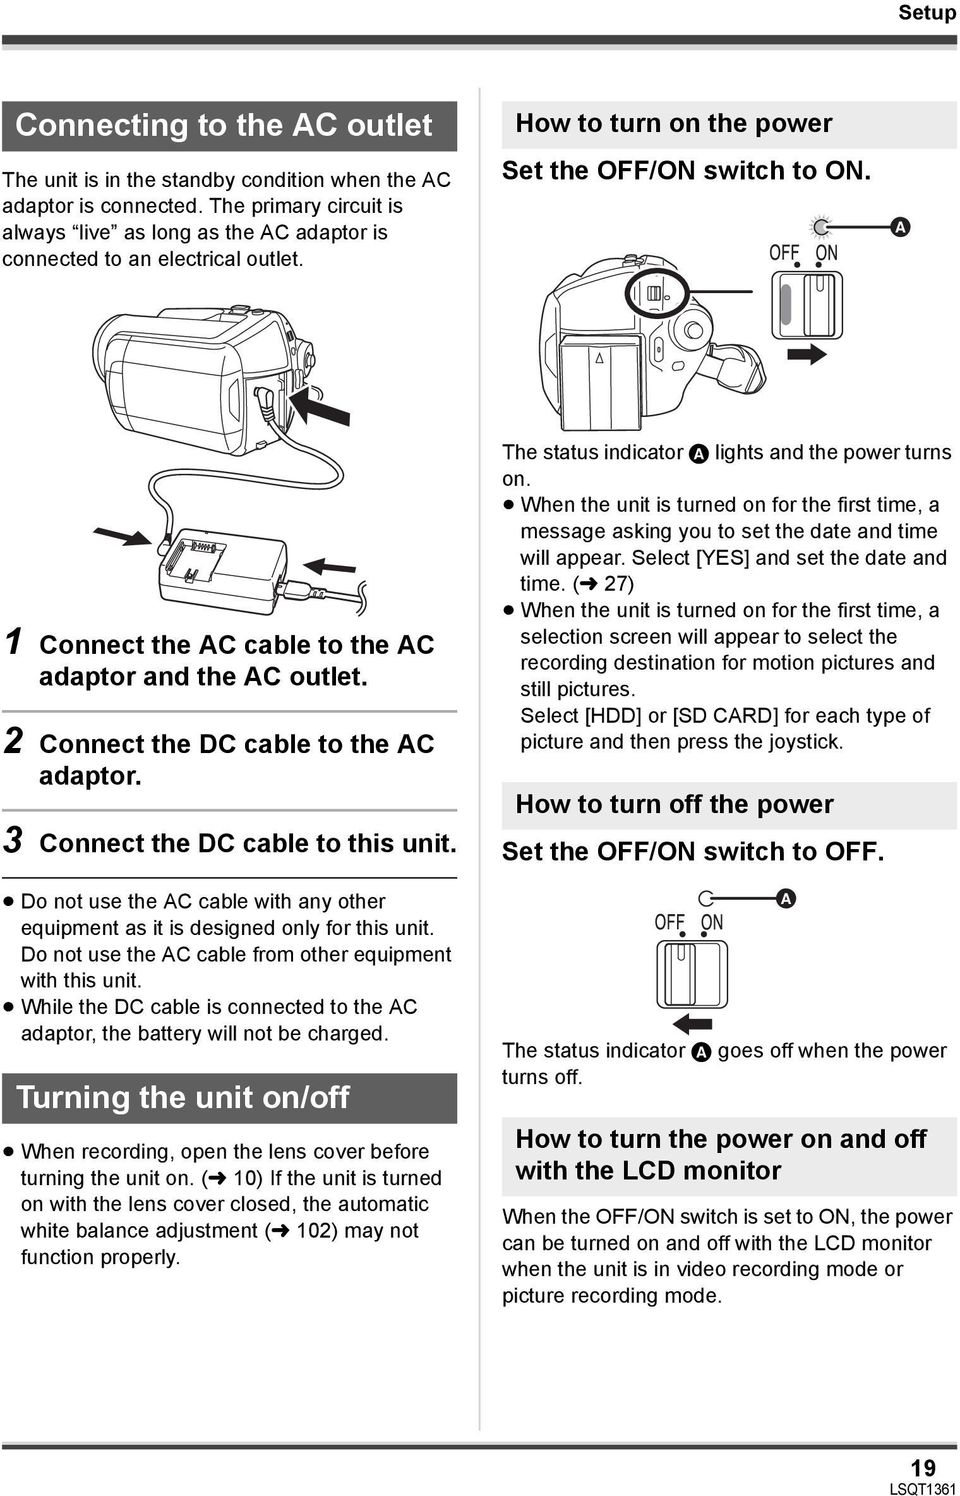 A 1 Connect the AC cable to the AC adaptor and the AC outlet. 2 Connect the DC cable to the AC adaptor. 3 Connect the DC cable to this unit.